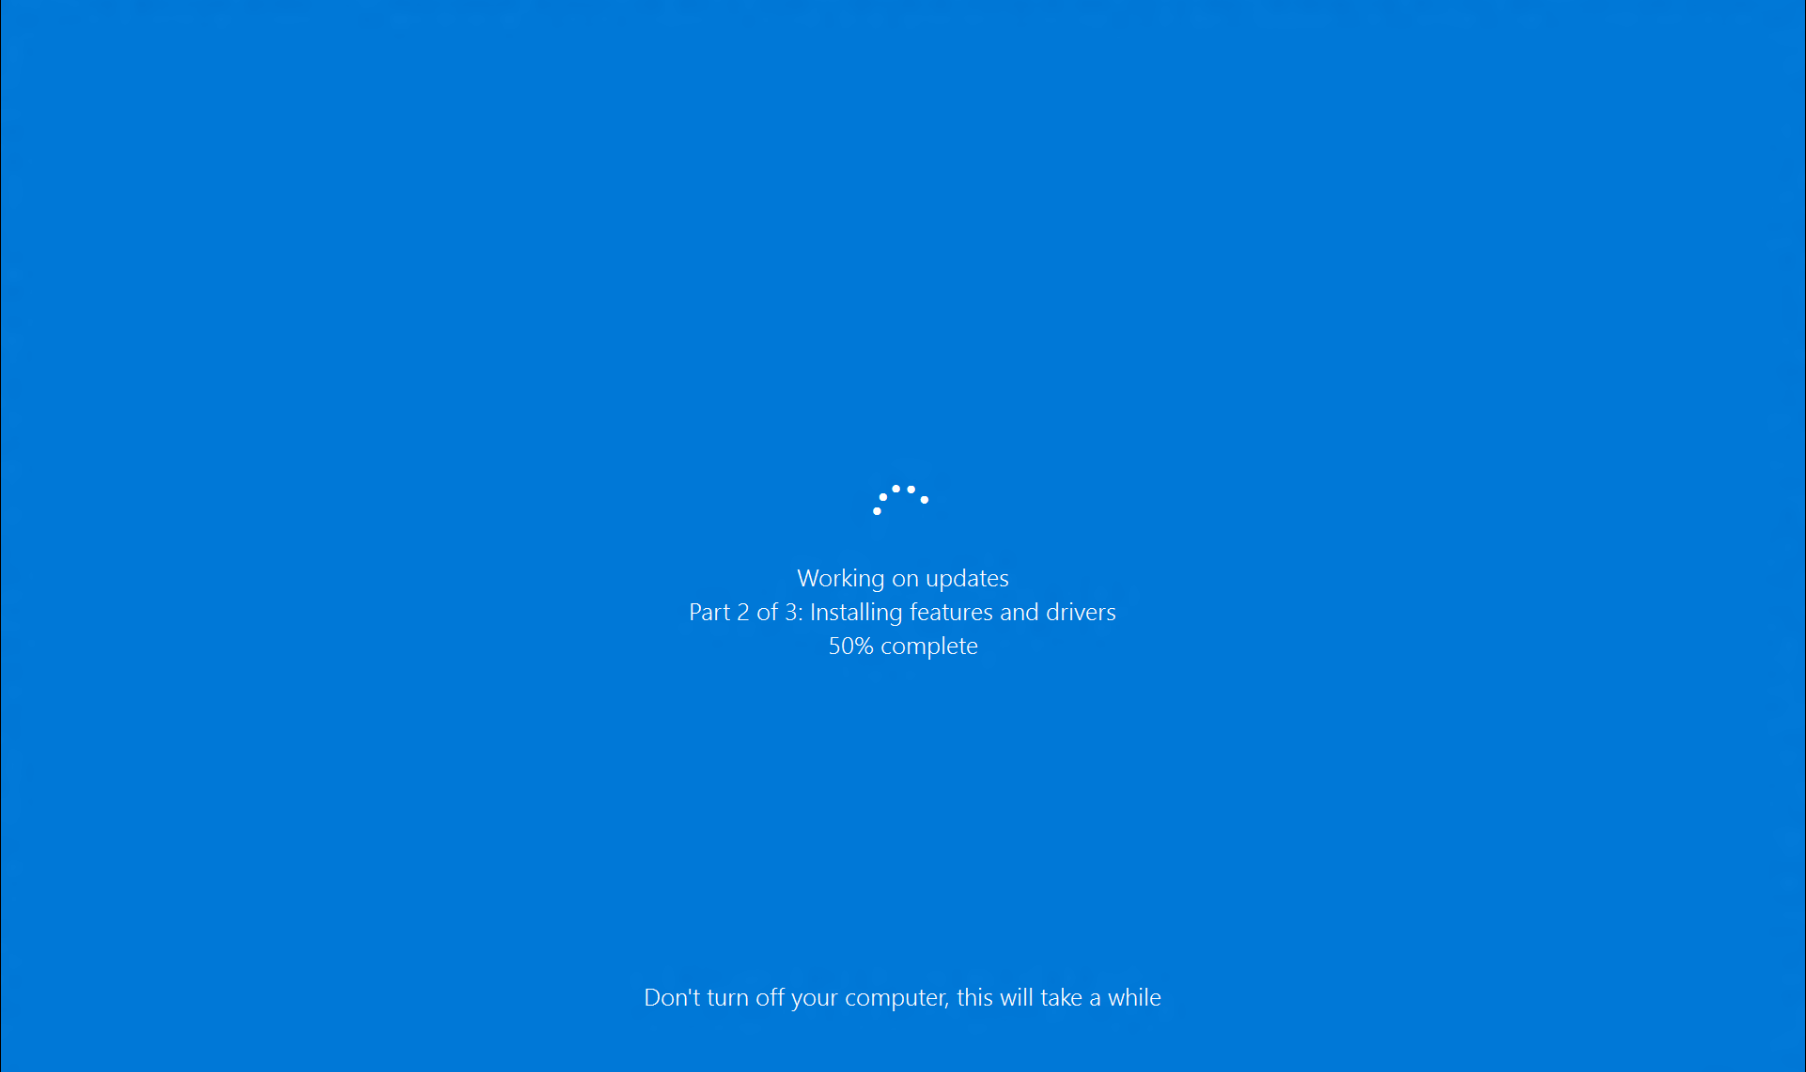 Turning off a computer while it is updating